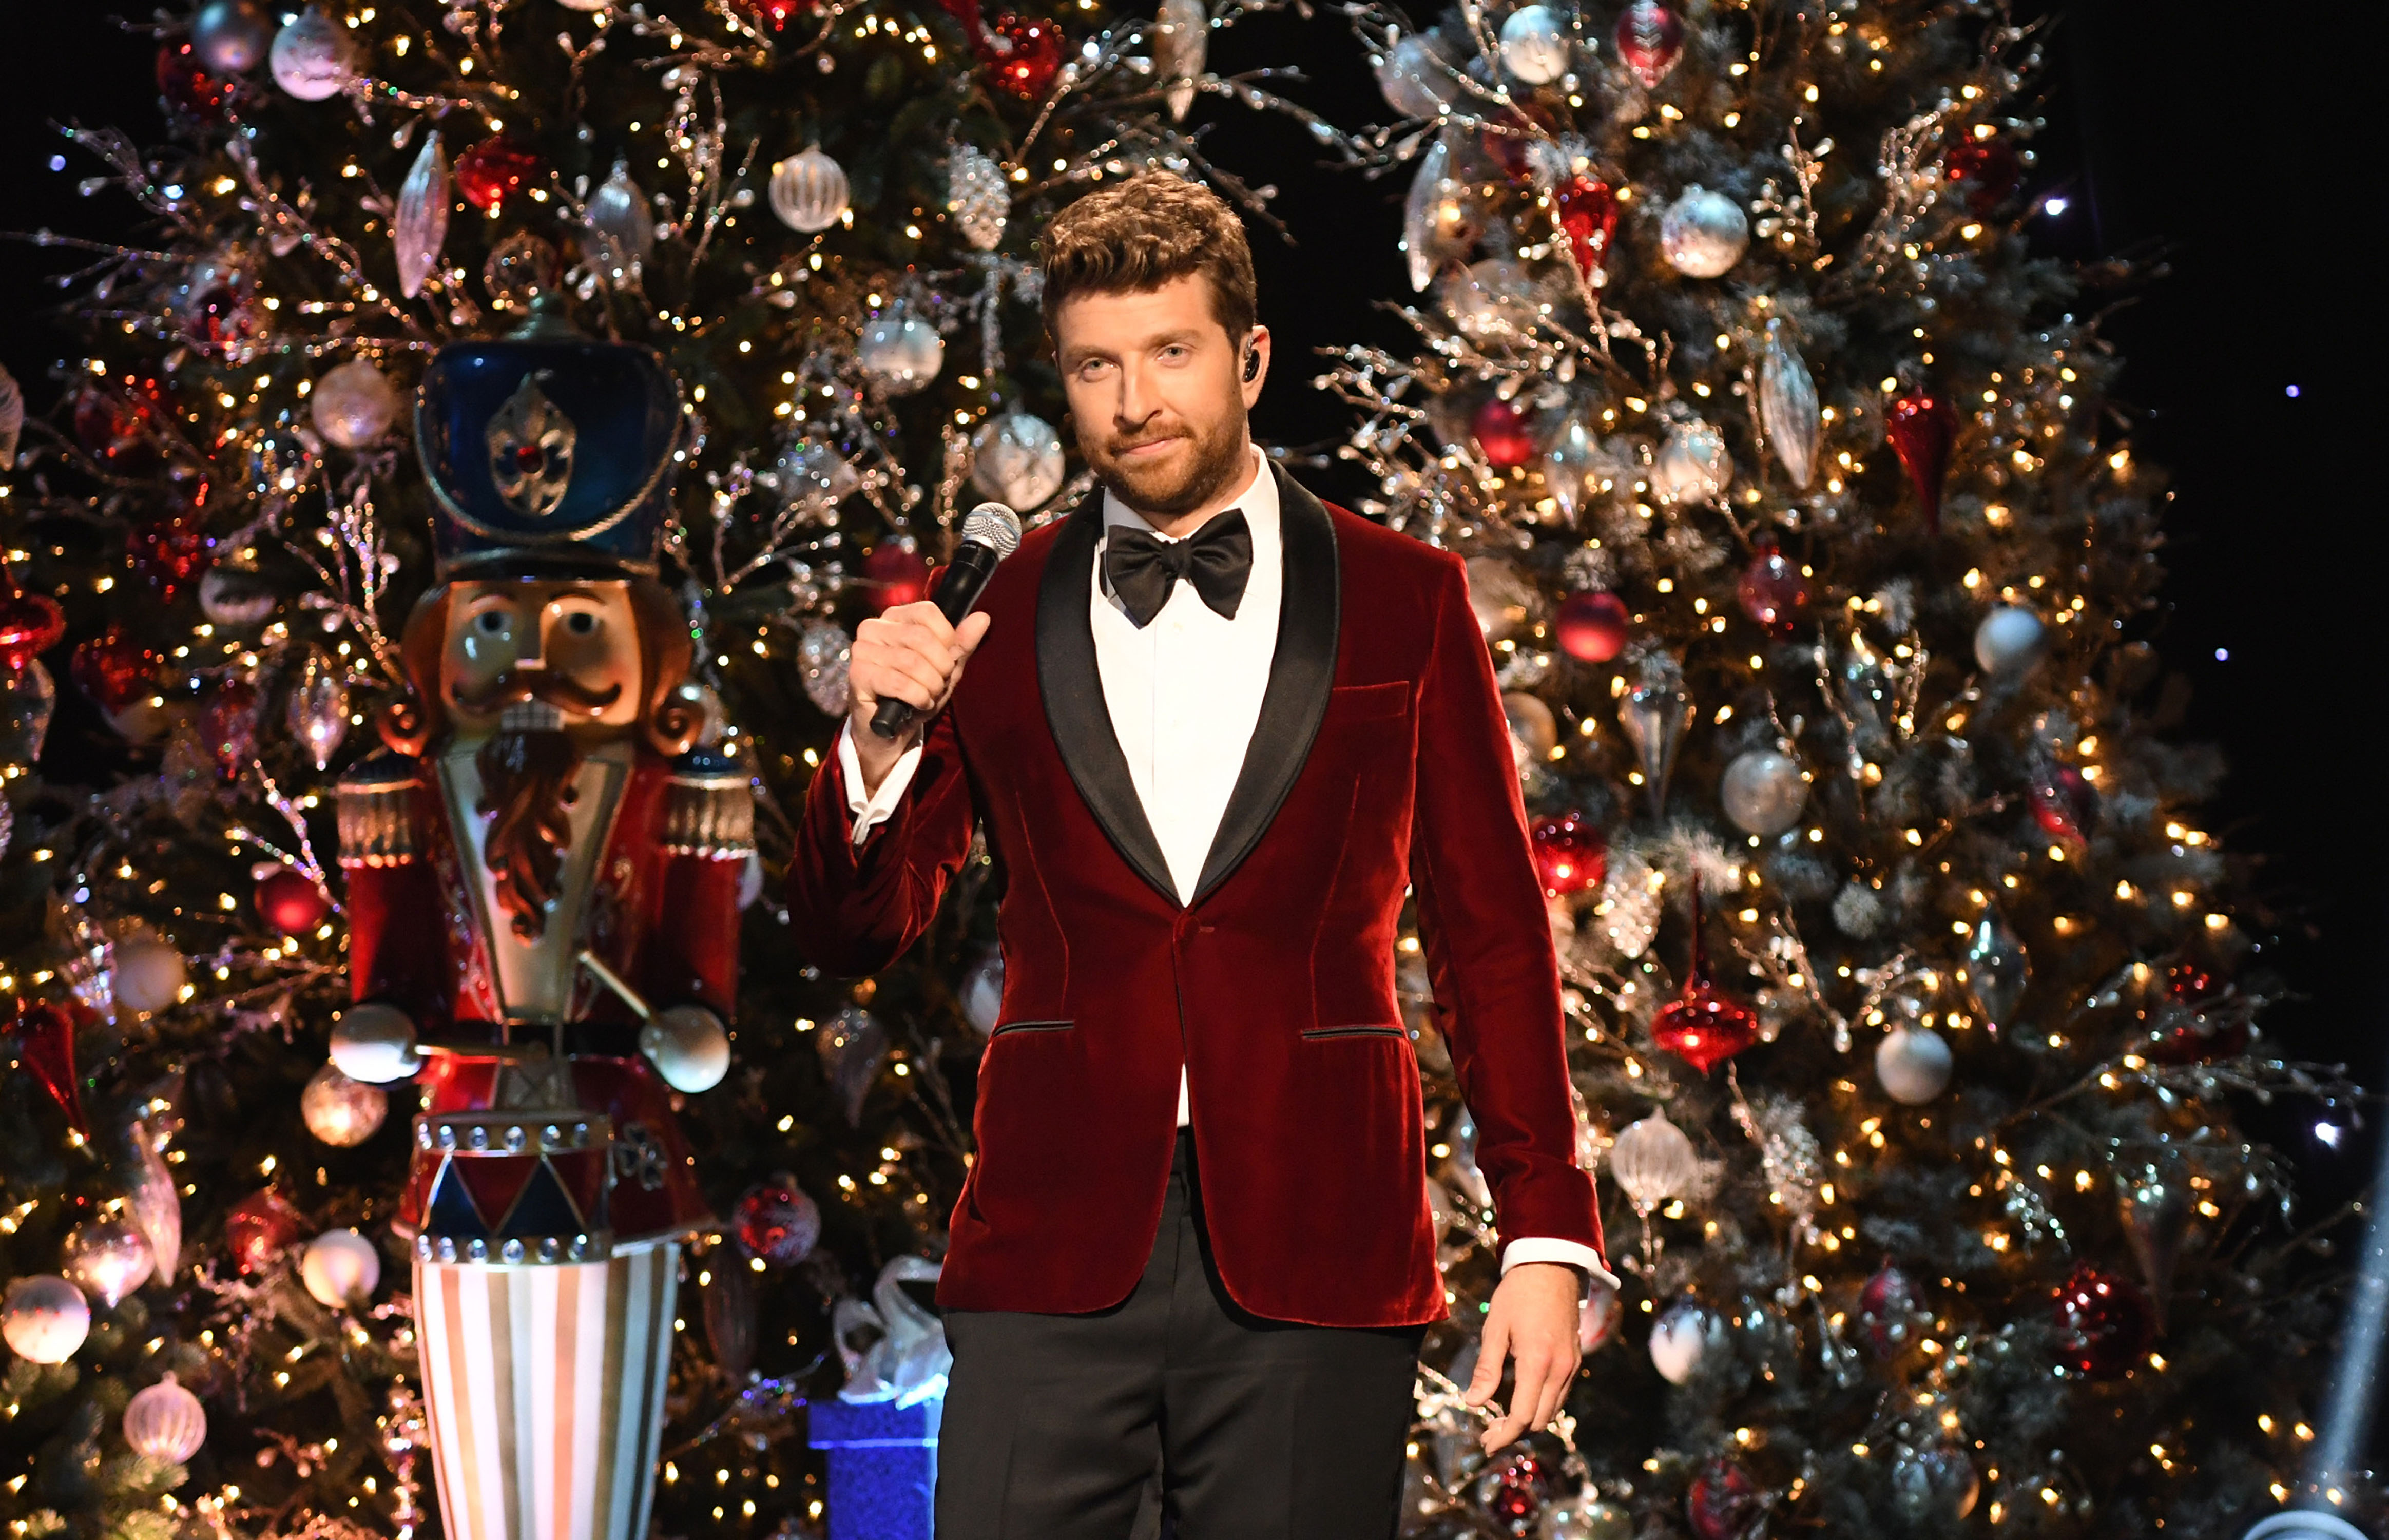 10 Best Country Christmas Songs | 95.1 FM & 92.9 FM